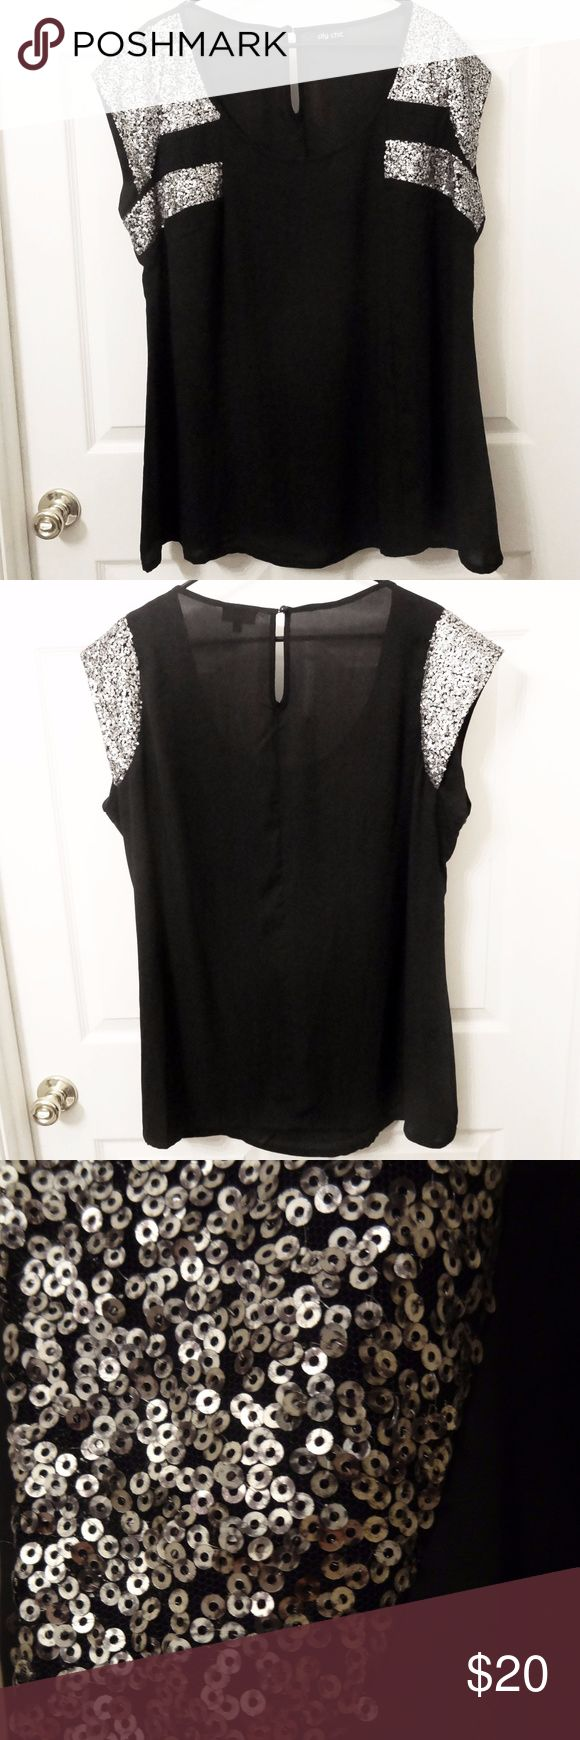 Black and Silver Short Sleeve Blouse Gorgeous short sleeve black and metallic silver sequin sheer blouse. This is a great sparkly top and is perfect for work or a night out. It's in great condition and has only been worn a few times. Tops Blouses